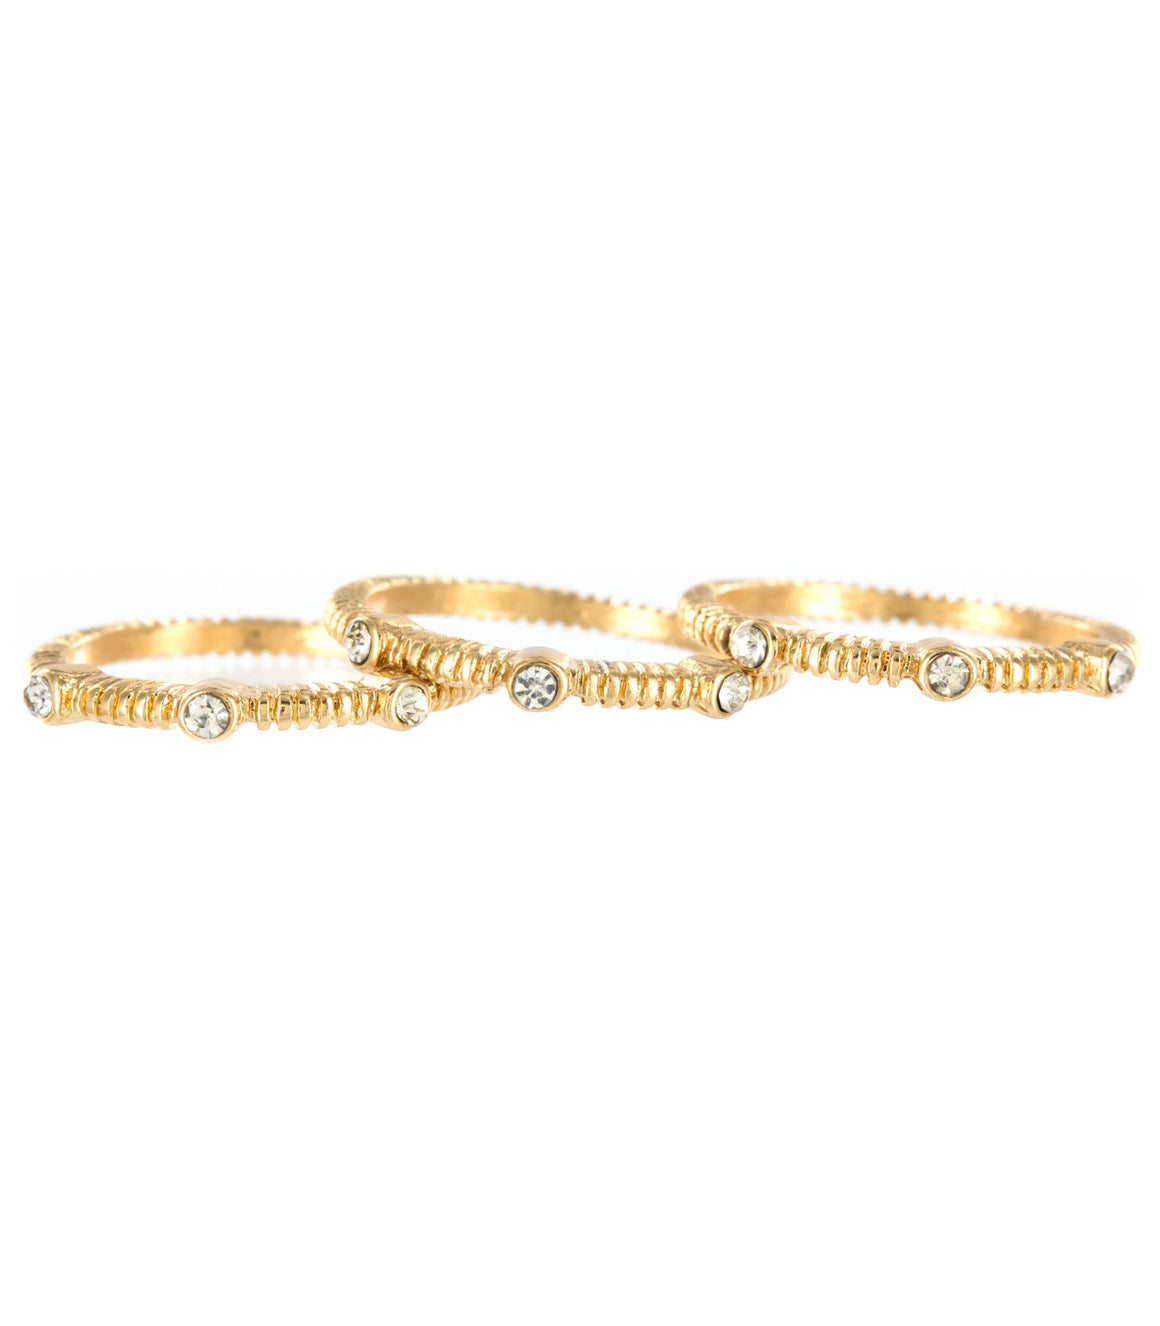 Minimalist delicate gold stacking rings.